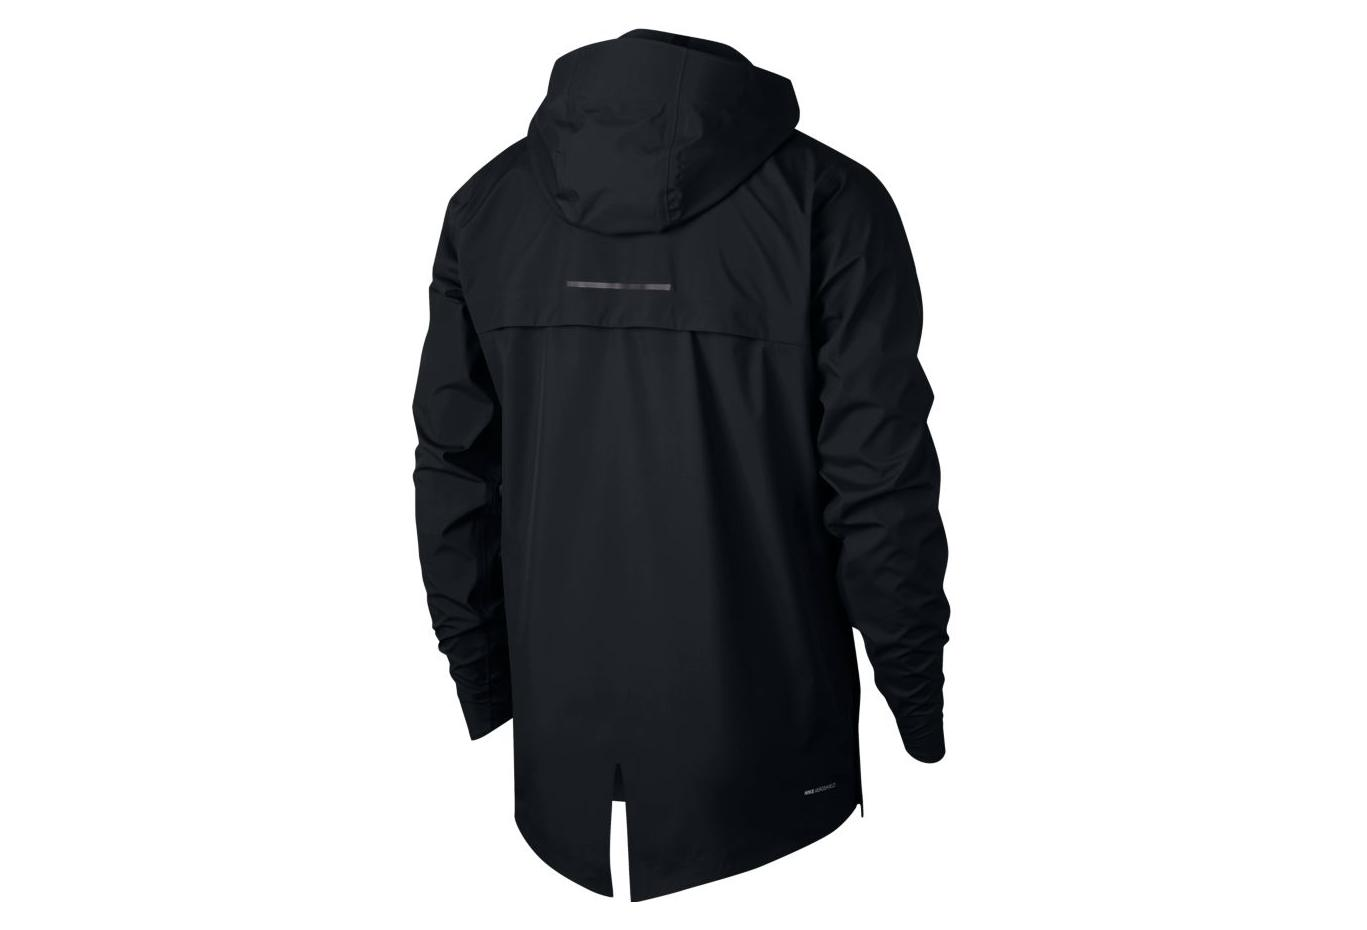 Nike Aeroshield Waterproof Jacket Black  64f16e4a9